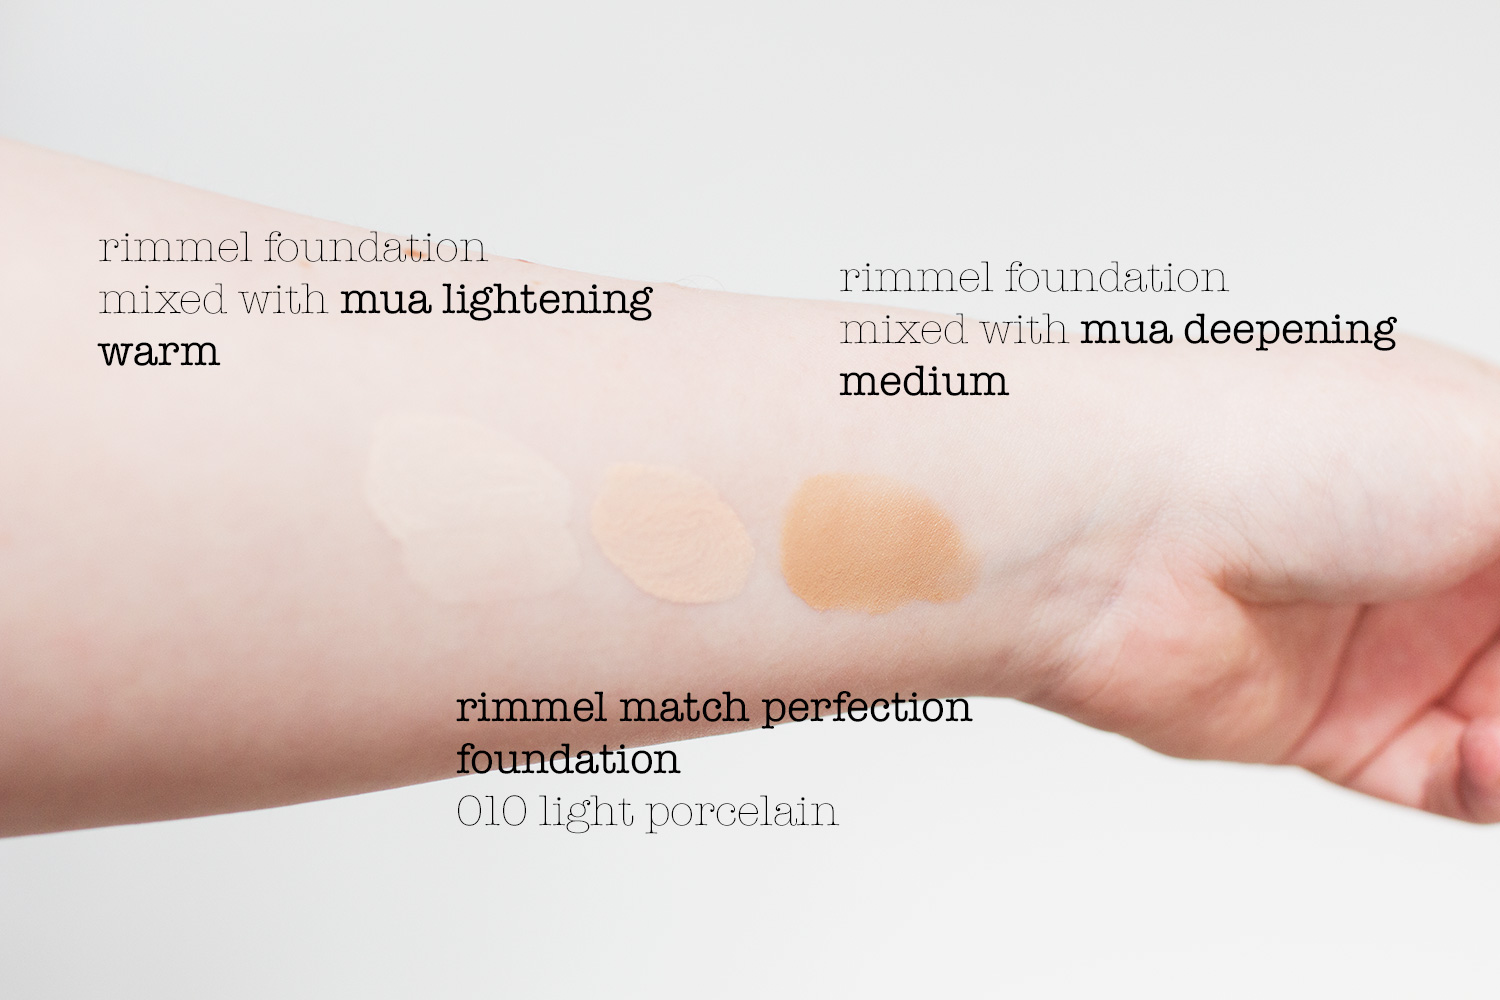 MUA Pro Custom Colour Foundation Mixers in Lightening Warm and Deepening Medium swatches, when mixed with Rimmel Match Perfection Foundation in 010 Light Porcelain. Photography by Alice Red.